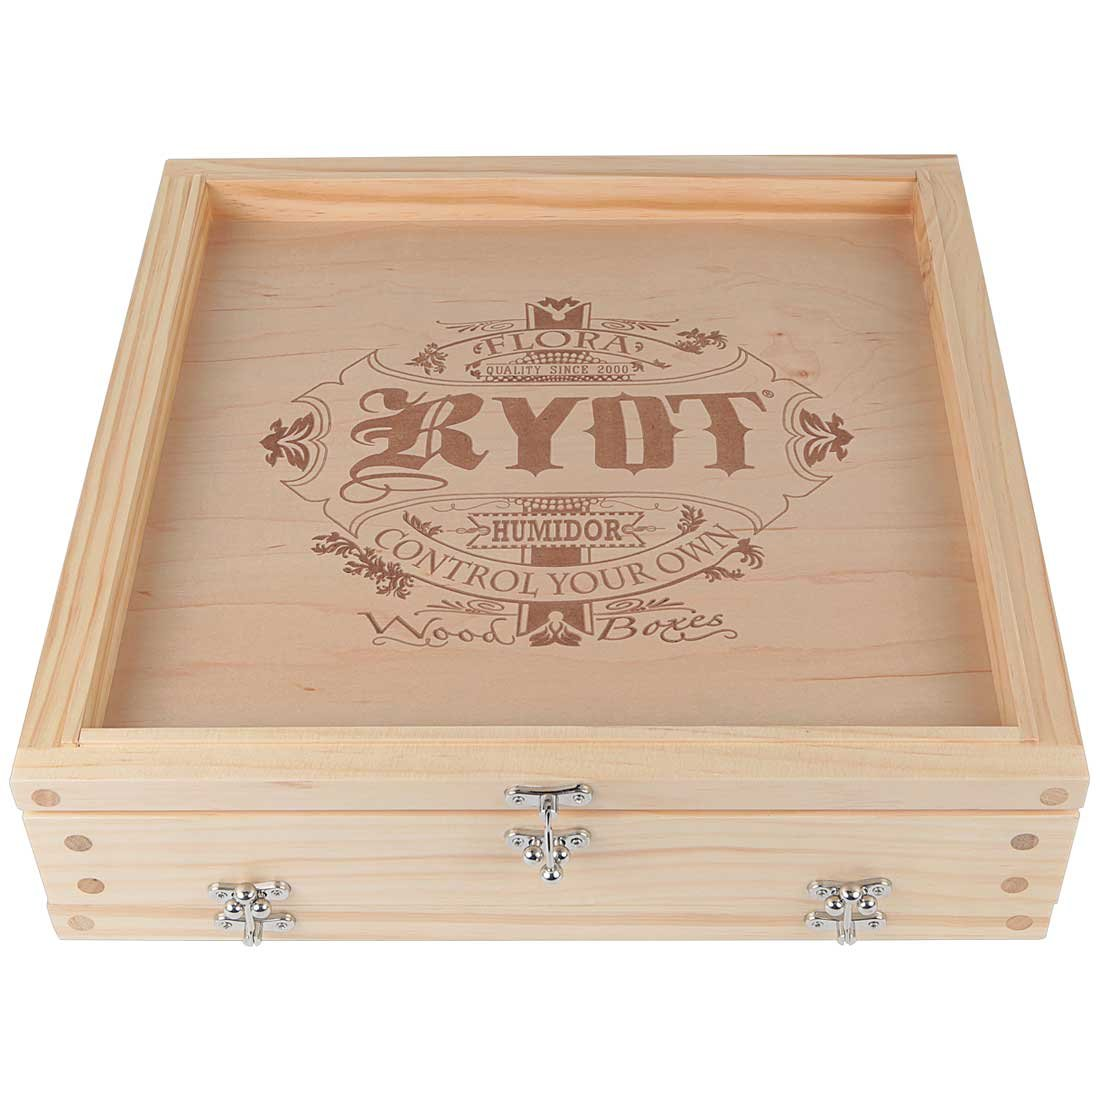 RYOT 15x15 ''Growers Box'' XL Natural Finish Wooden Pollen Sifting Box with Monofilament Screen by RYOT (Image #3)